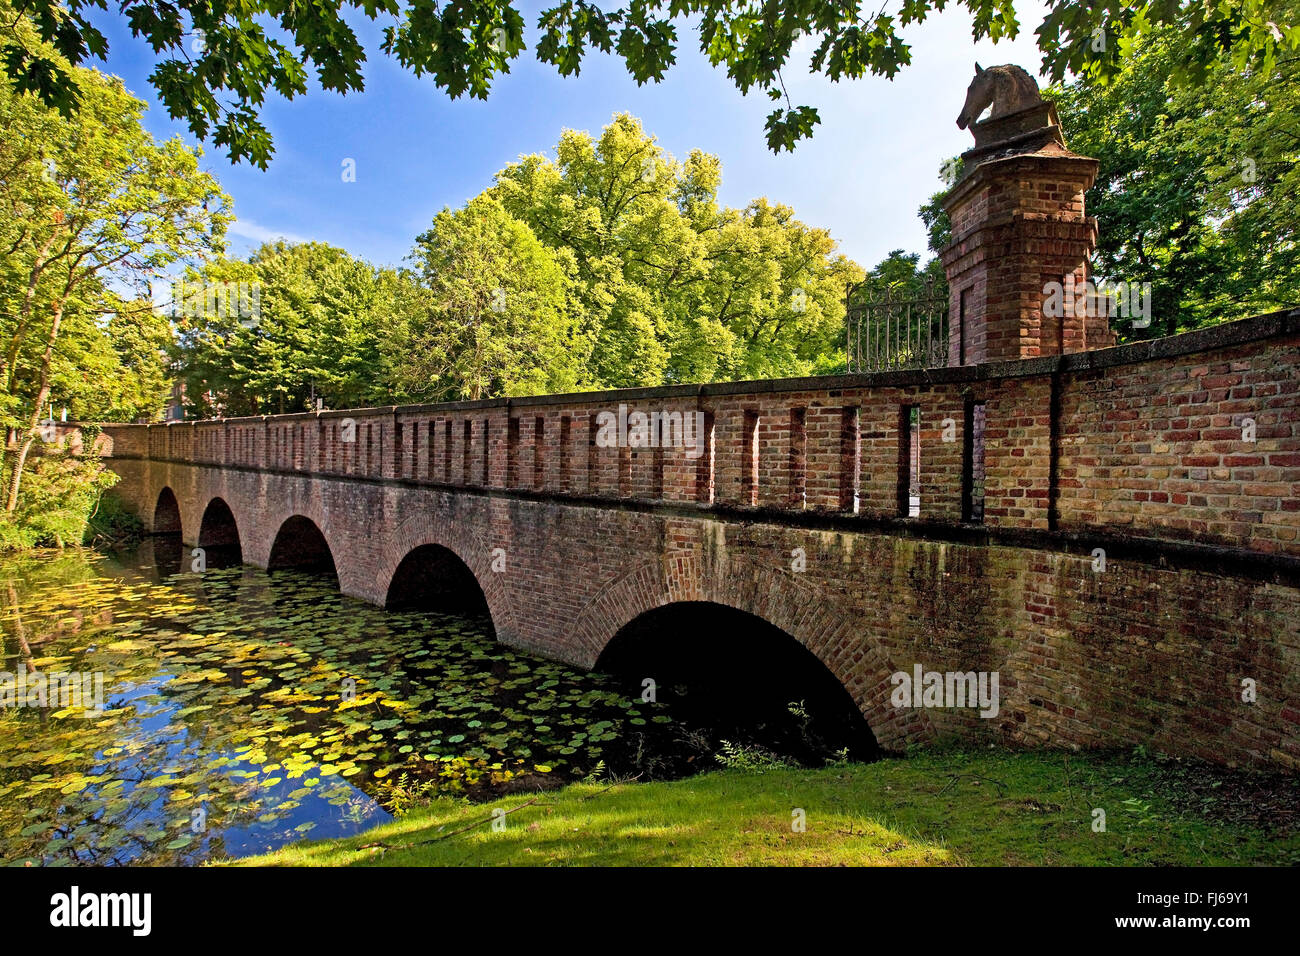 bridge to castle Wickrath, Germany, North Rhine-Westphalia, Lower Rhine, Moenchengladbach - Stock Image